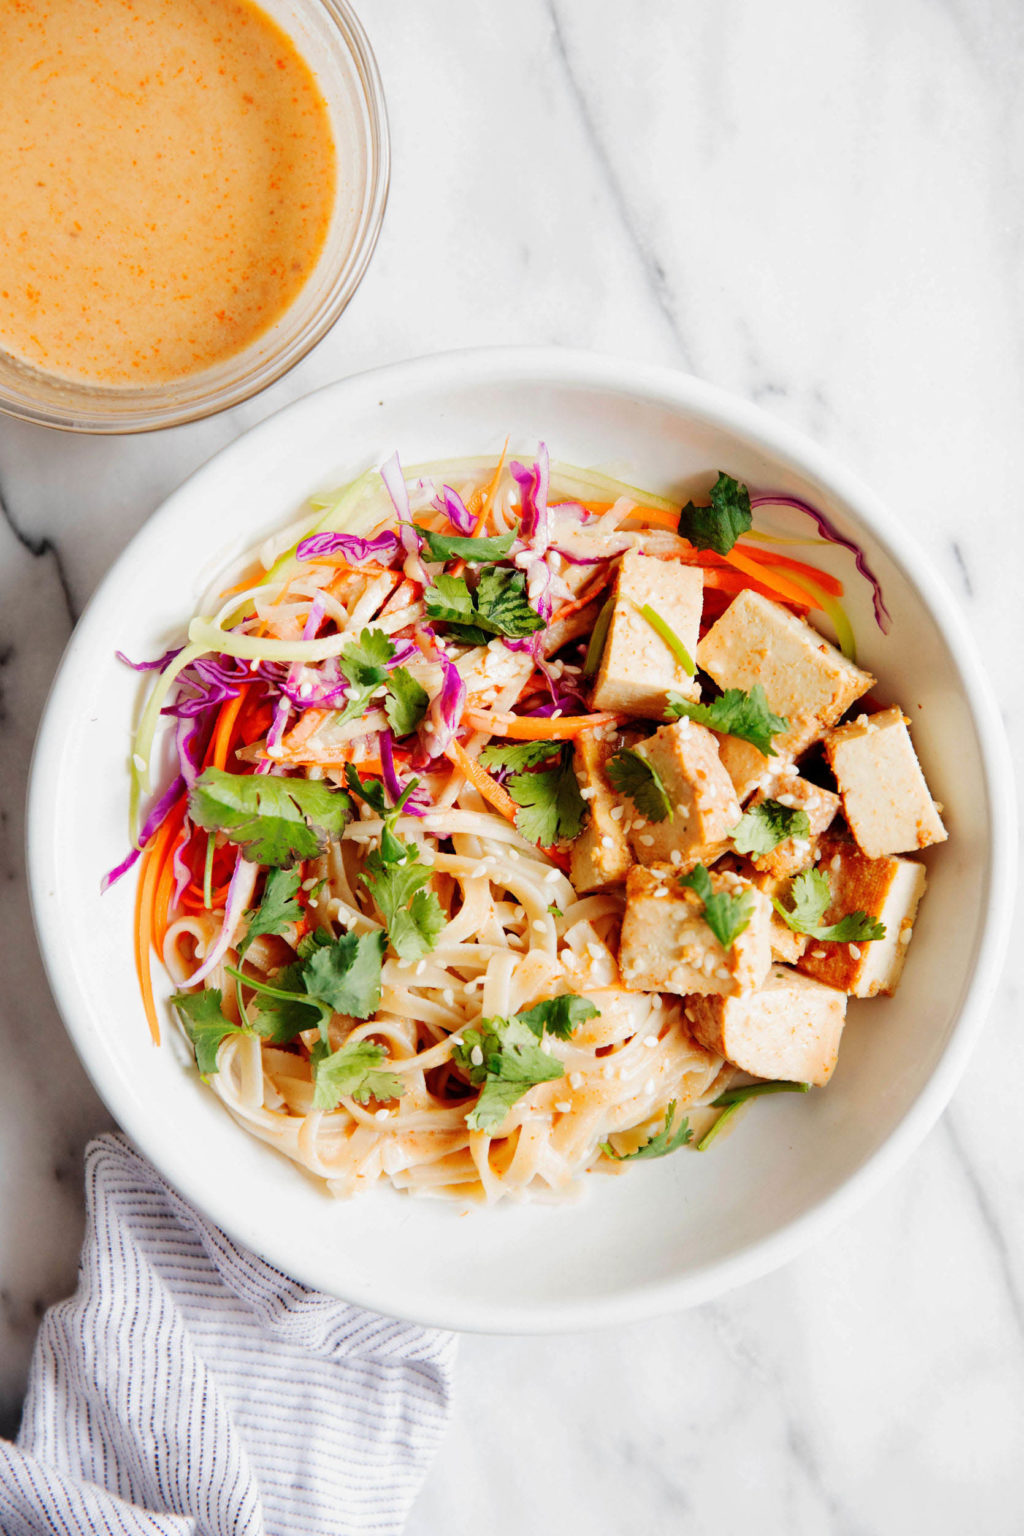 A bright teriyaki tofu noodle bowl is resting on white marble, with a small bowl of sauce nearby.